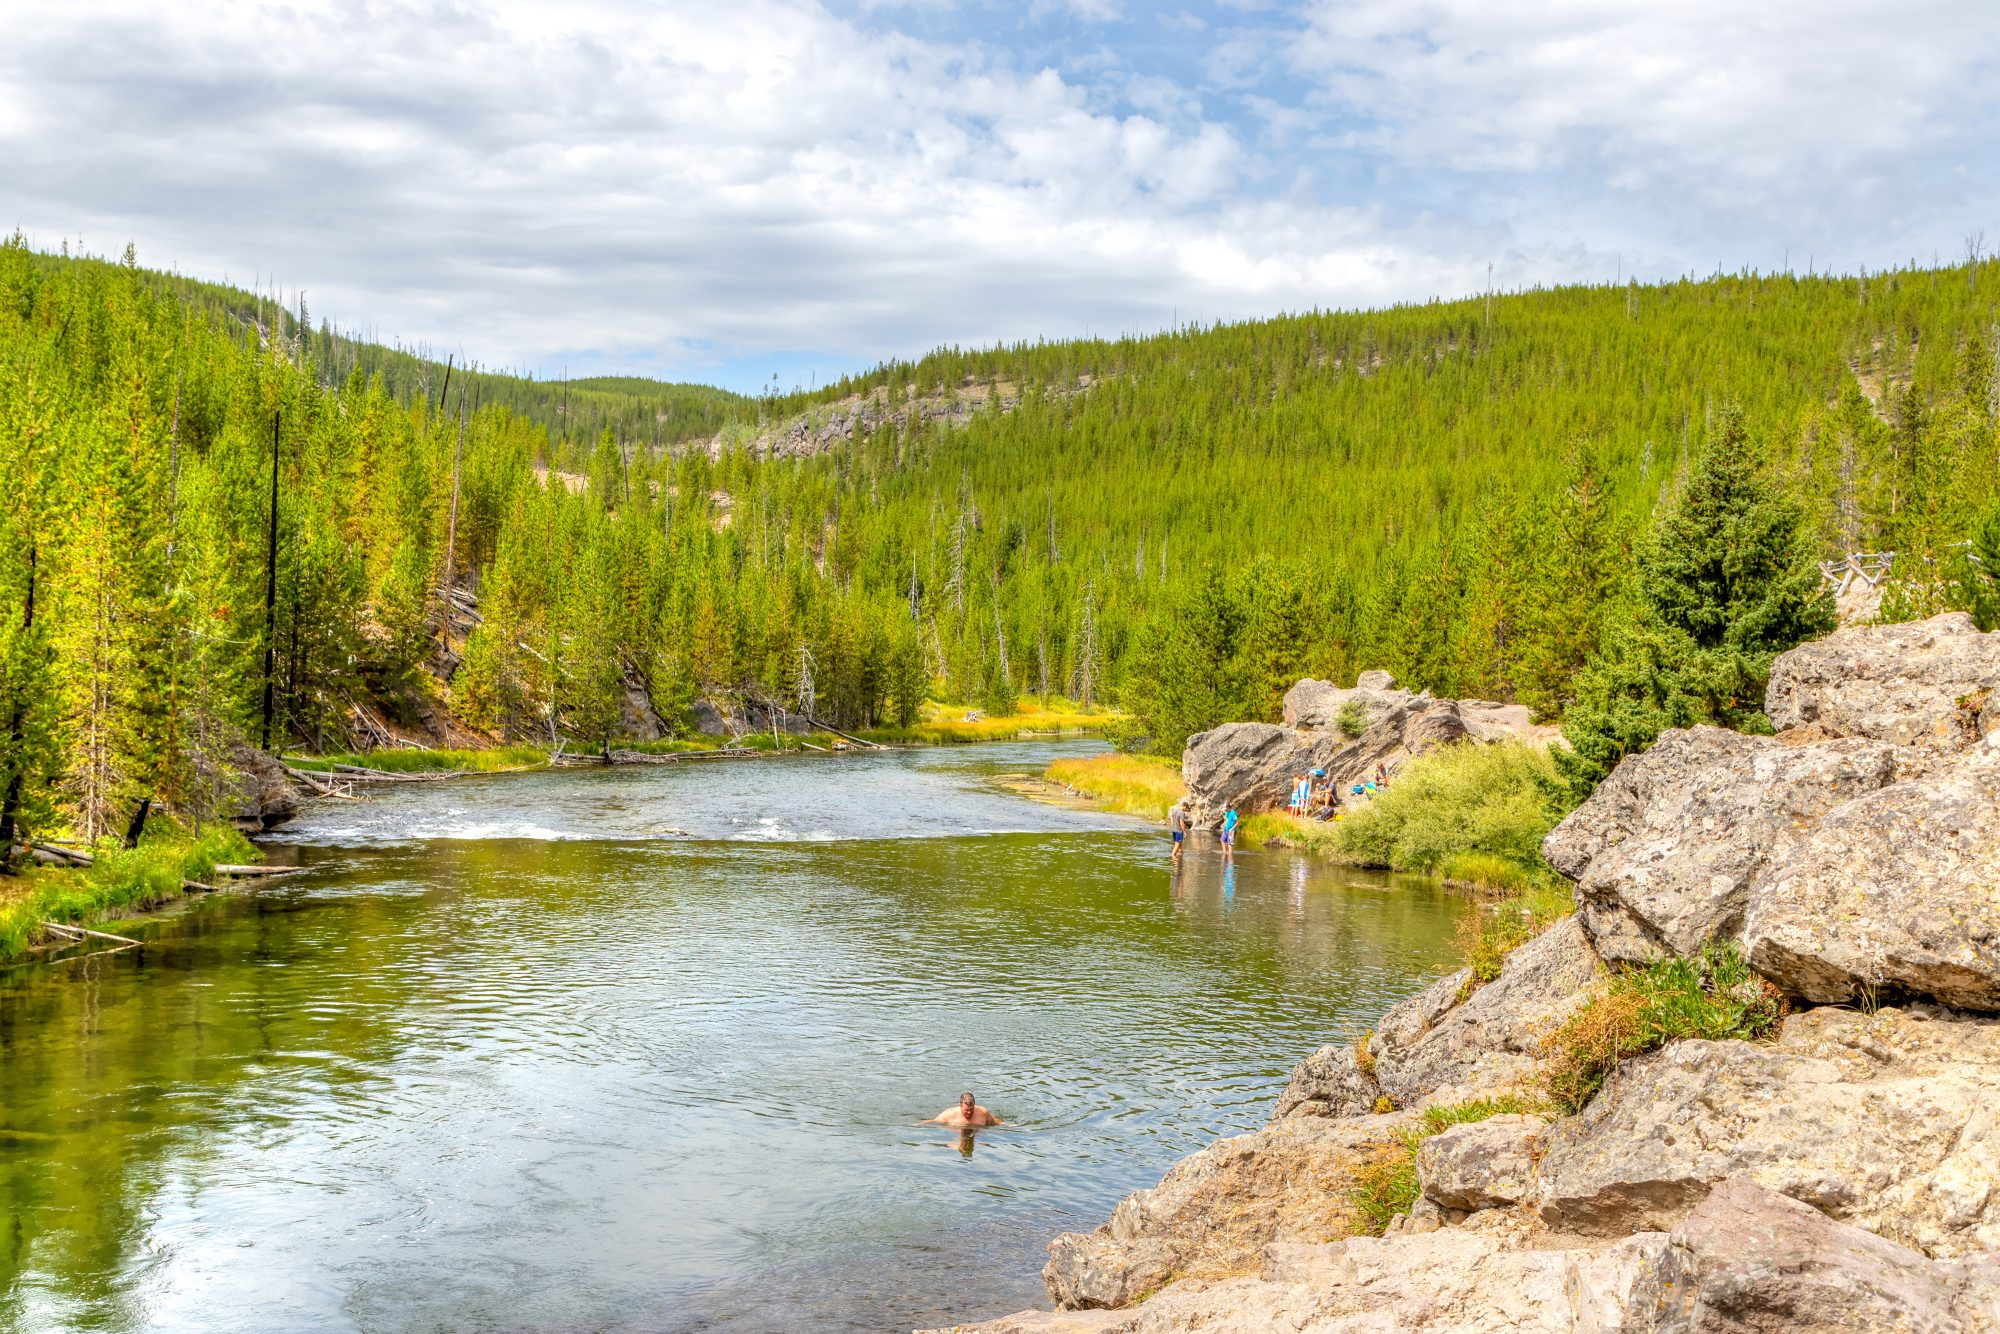 Swimming in Firehole River in Yellowstone National Park